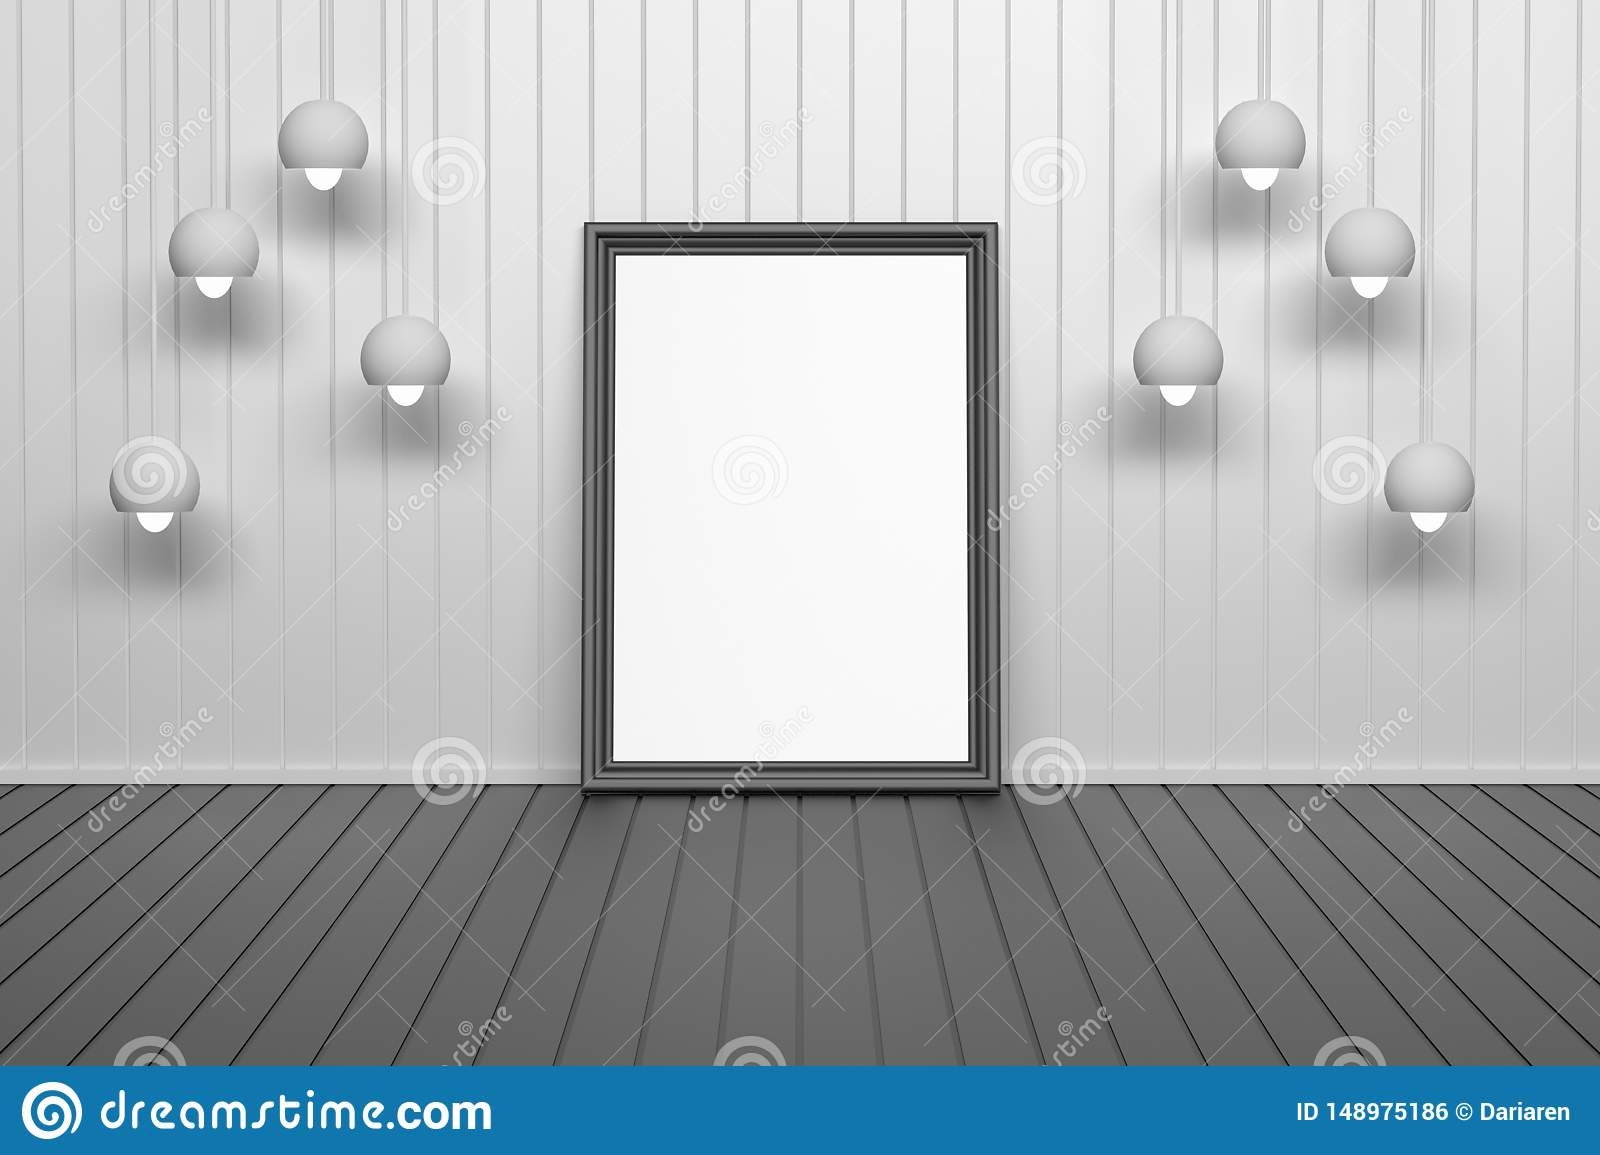 Single picture image frame